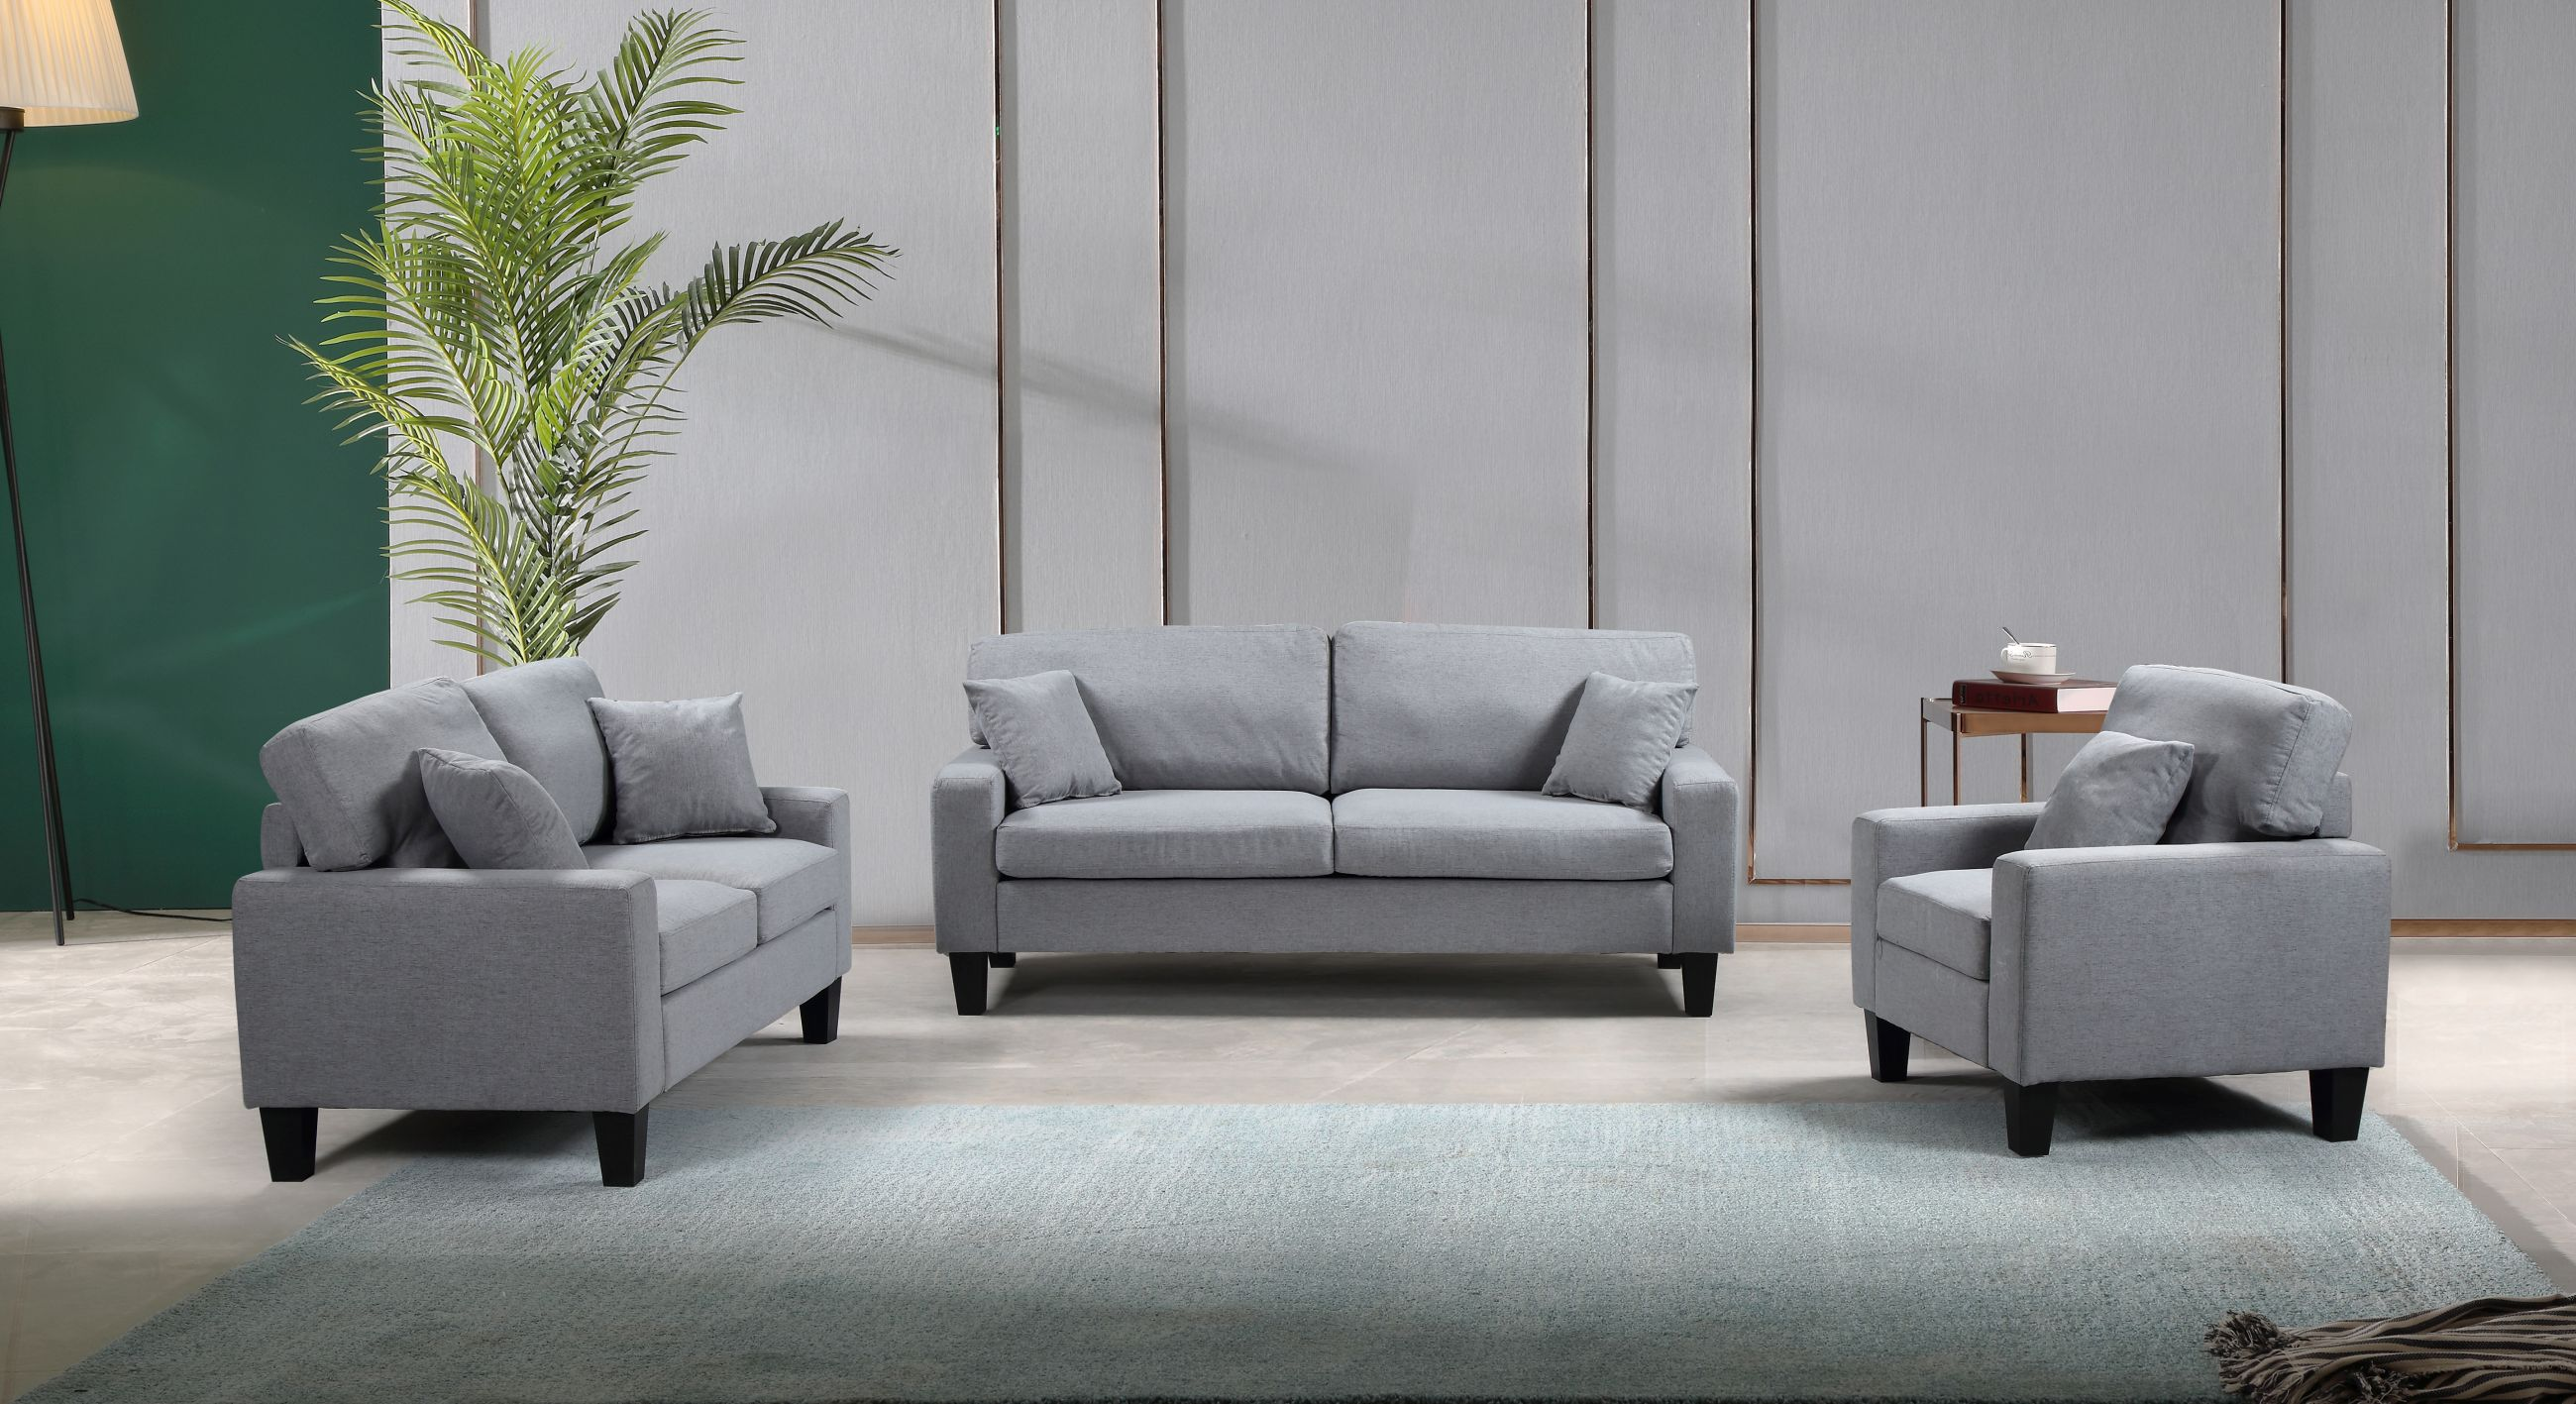 Zara 3-PC Sofa Set - Grey